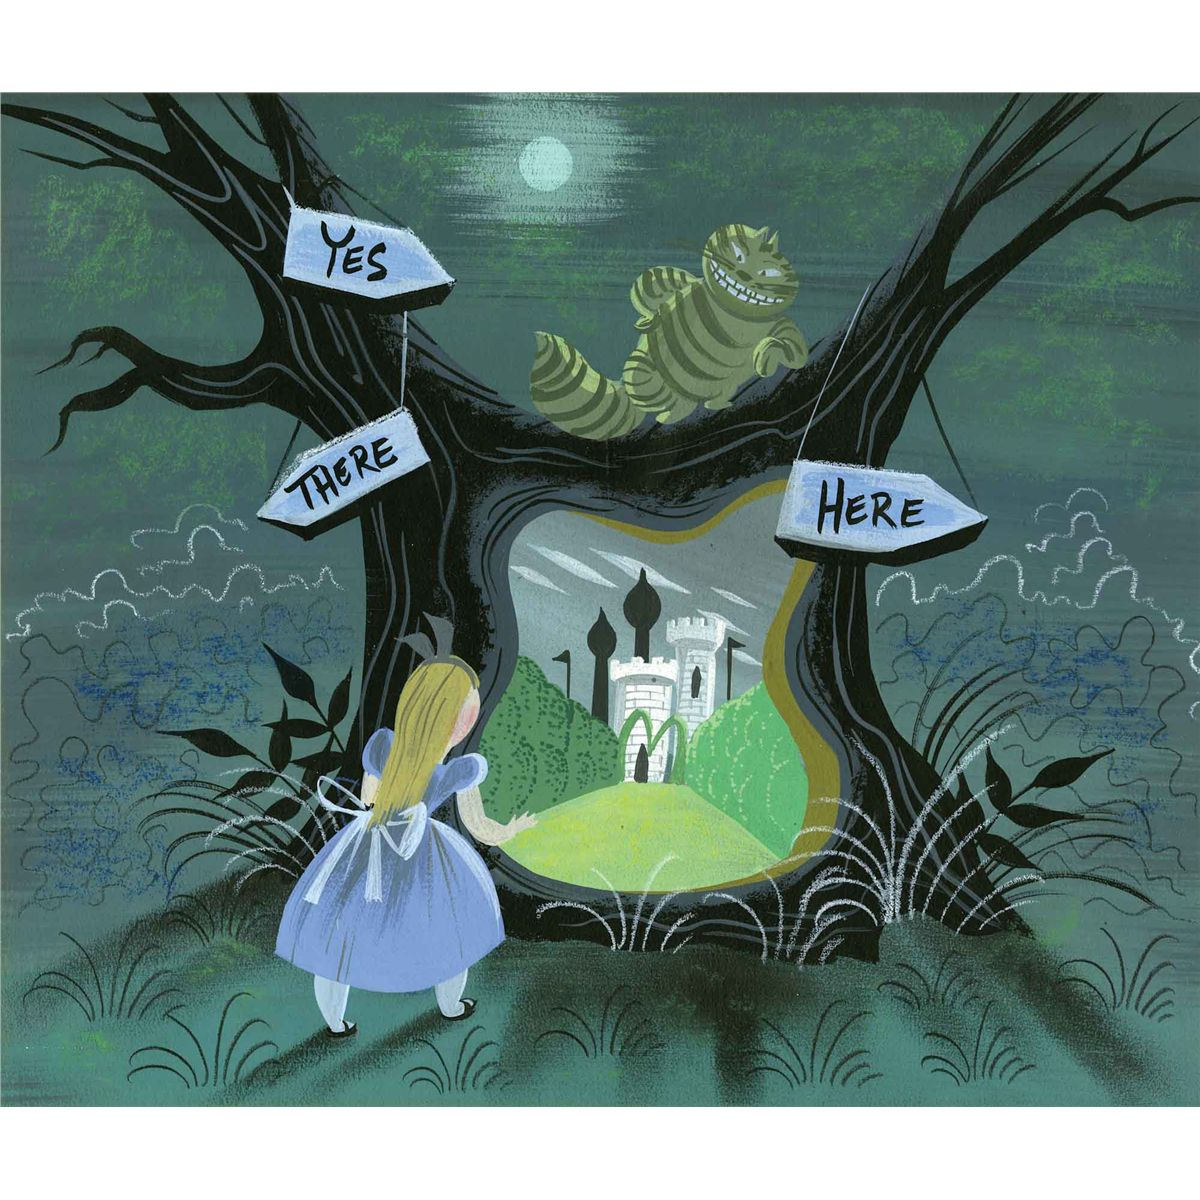 Cute Good Nite Wallpaper Mary Blair Concept Painting Of Alice Amp Cheshire Cat In The